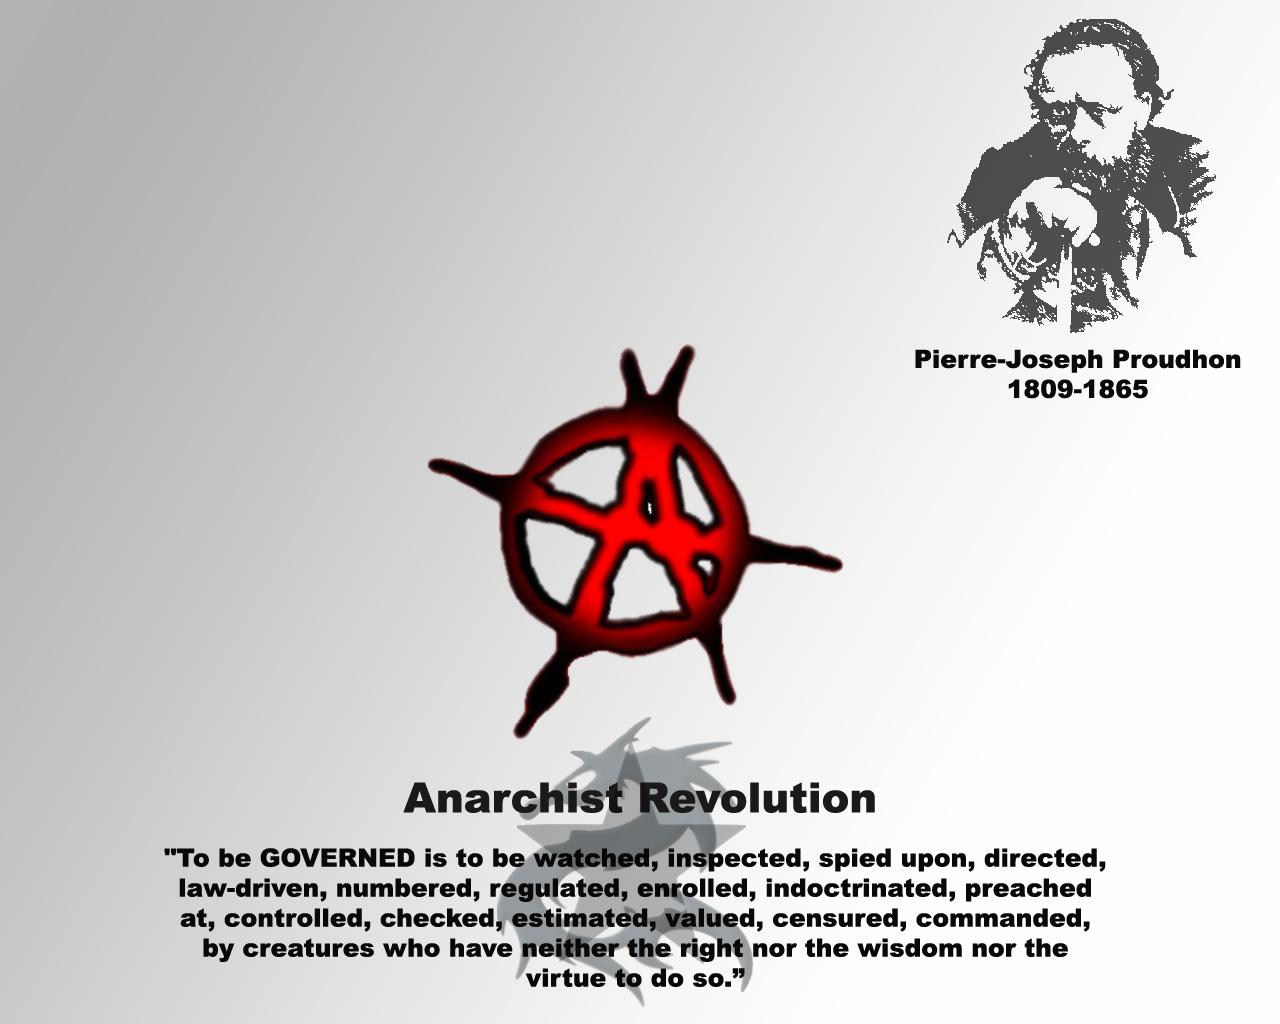 anarchy anarchism and purely anarchist revolution Anarchism in the united states began in the mid 19th  they could identify as advocates of anarchy or revolution  on anarchy, the anarchist.